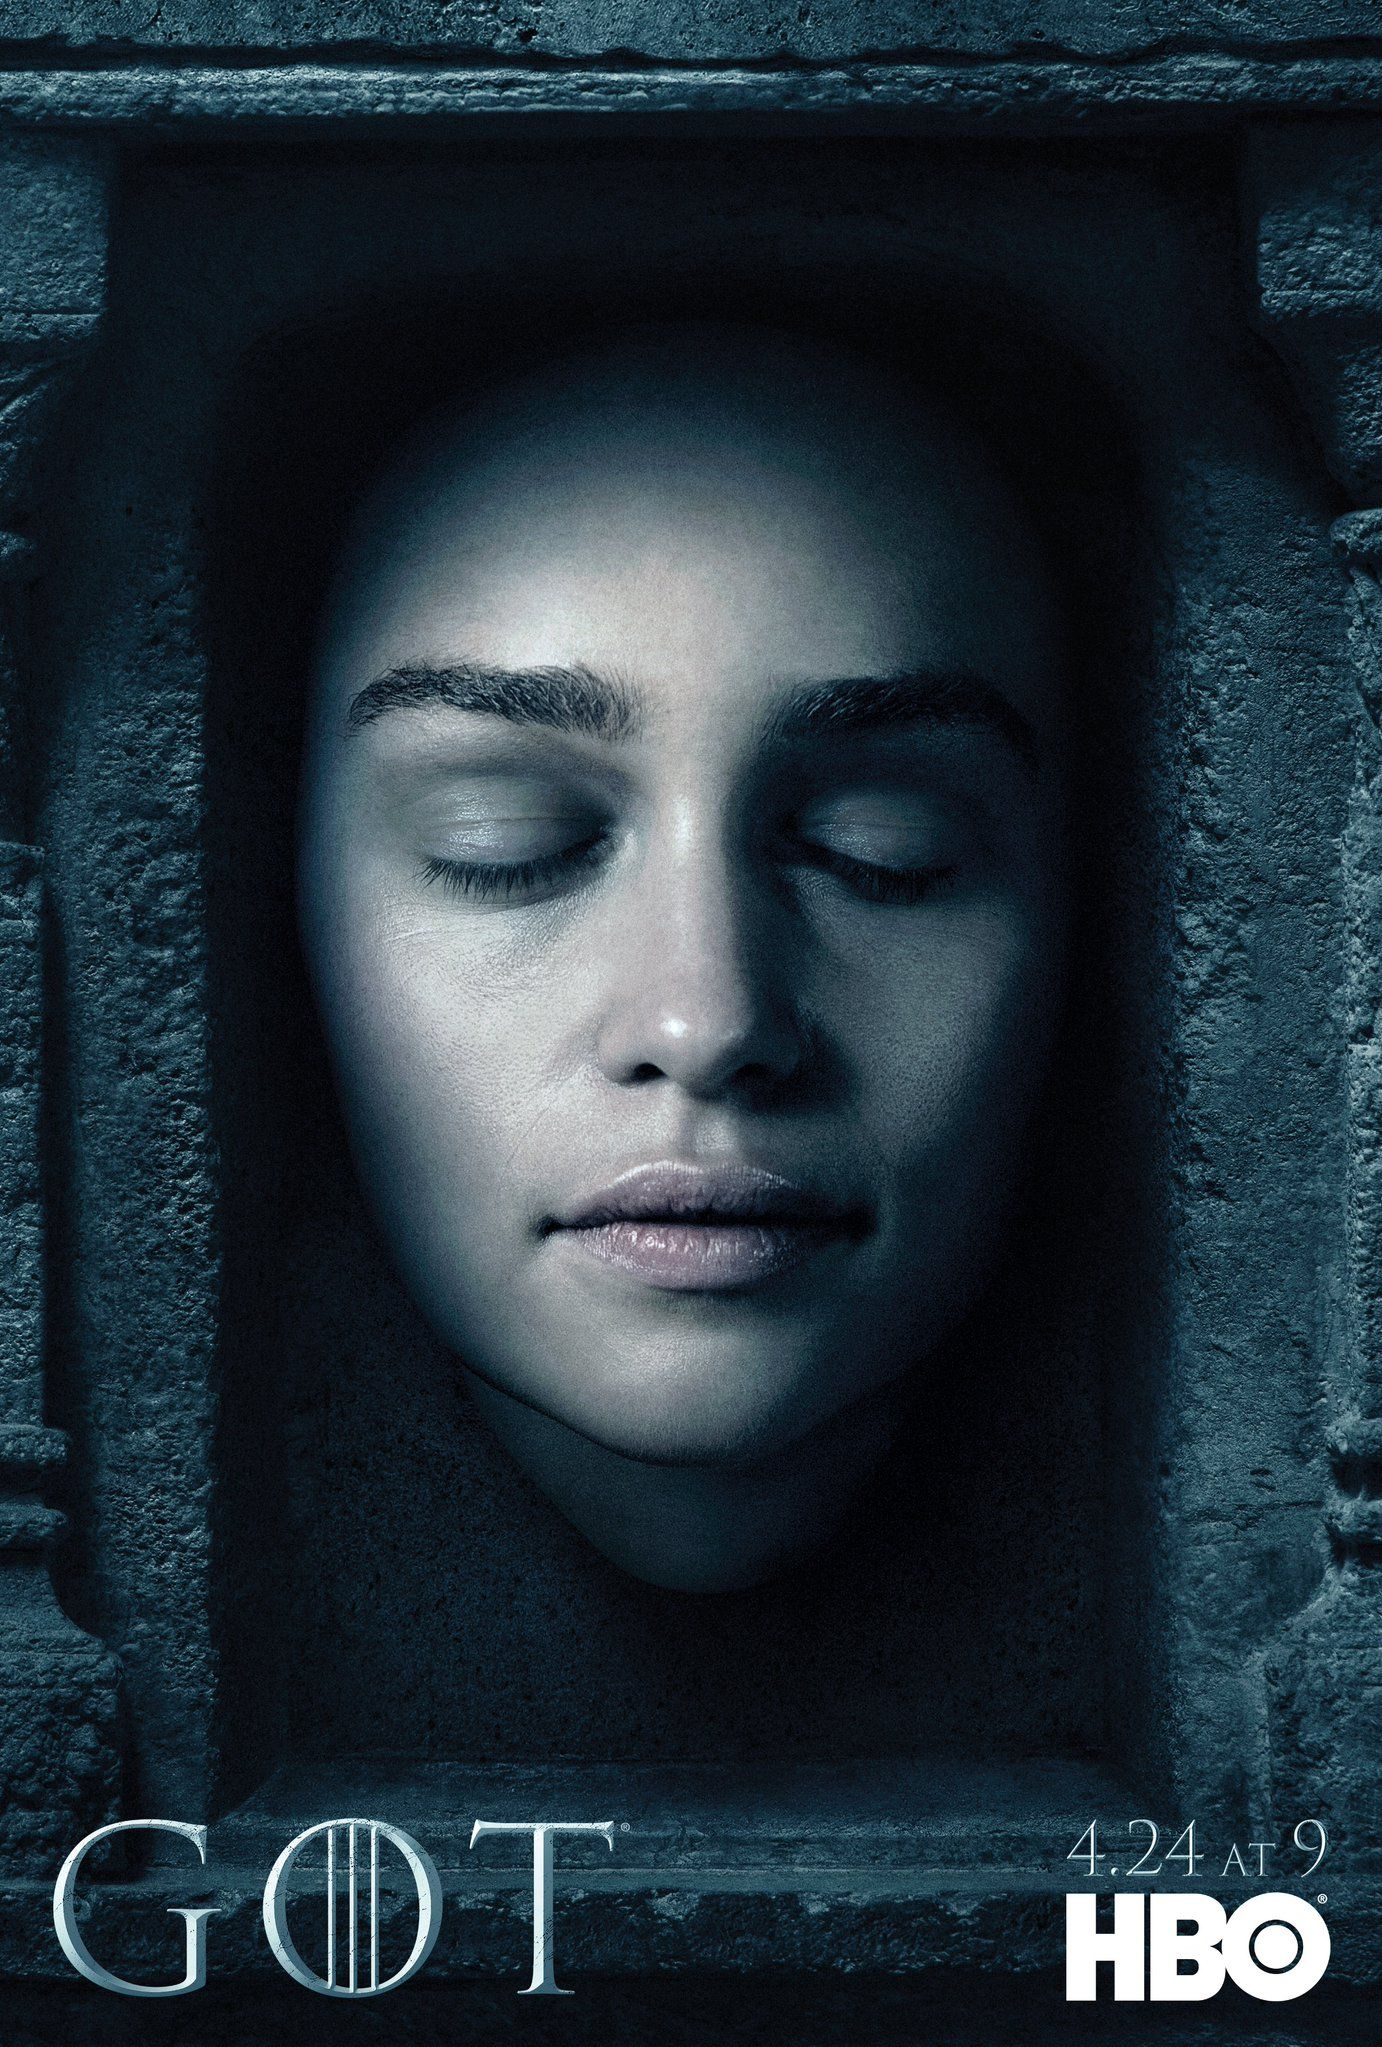 Game of Thrones Expanded Credits Reveal Easter Eggs